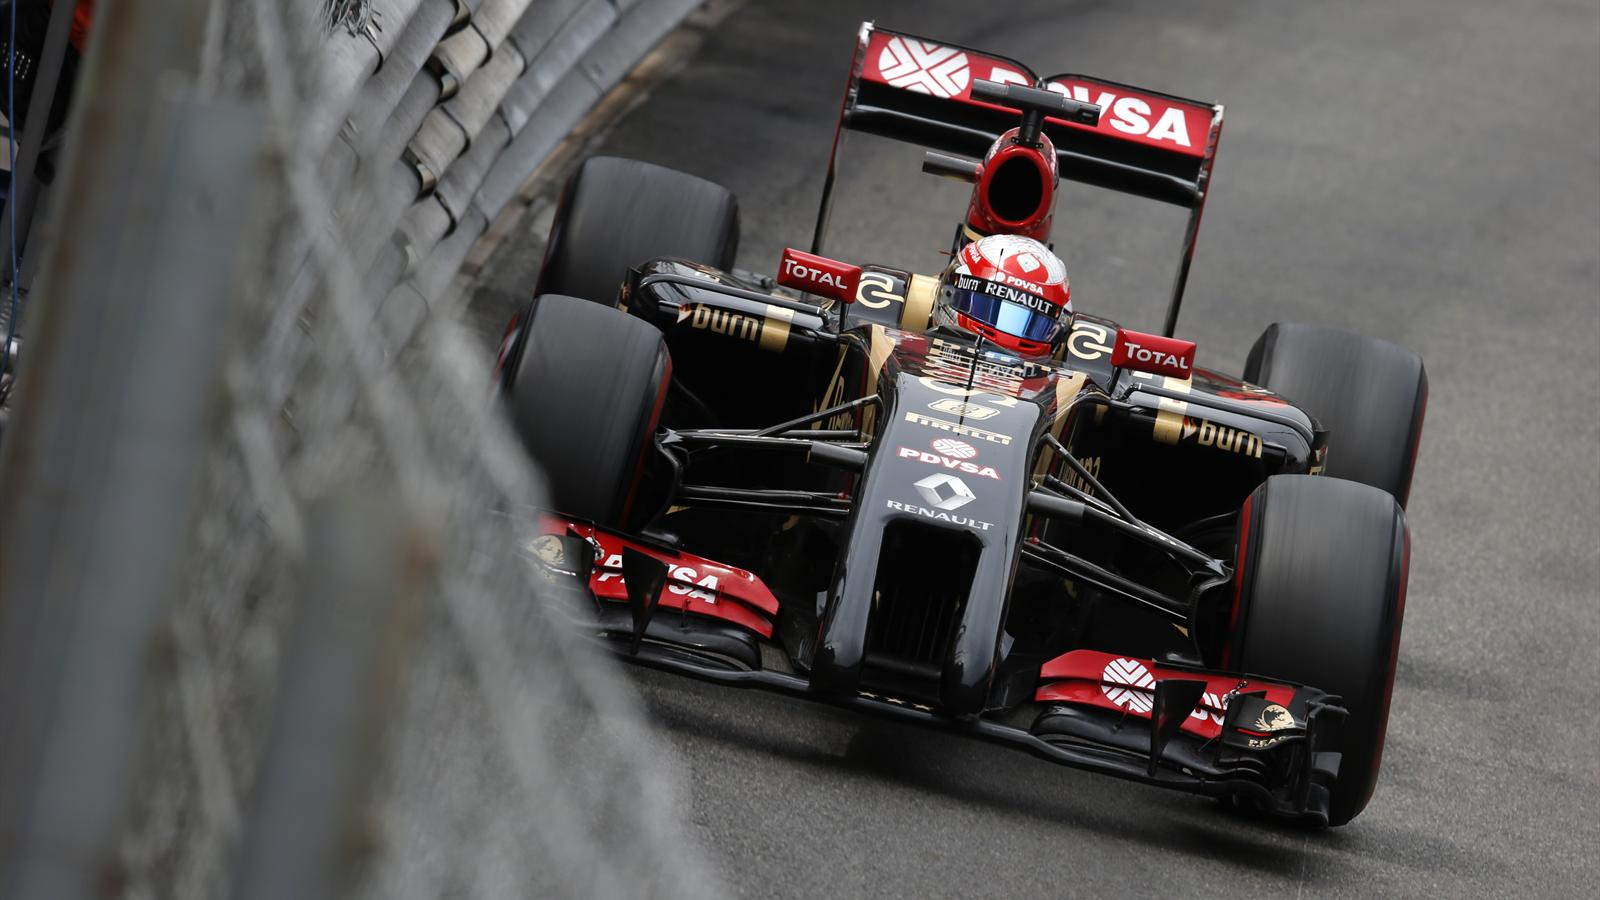 Des points pour Romain Grosjean (Lotus) au Grand Prix de Monaco 2014